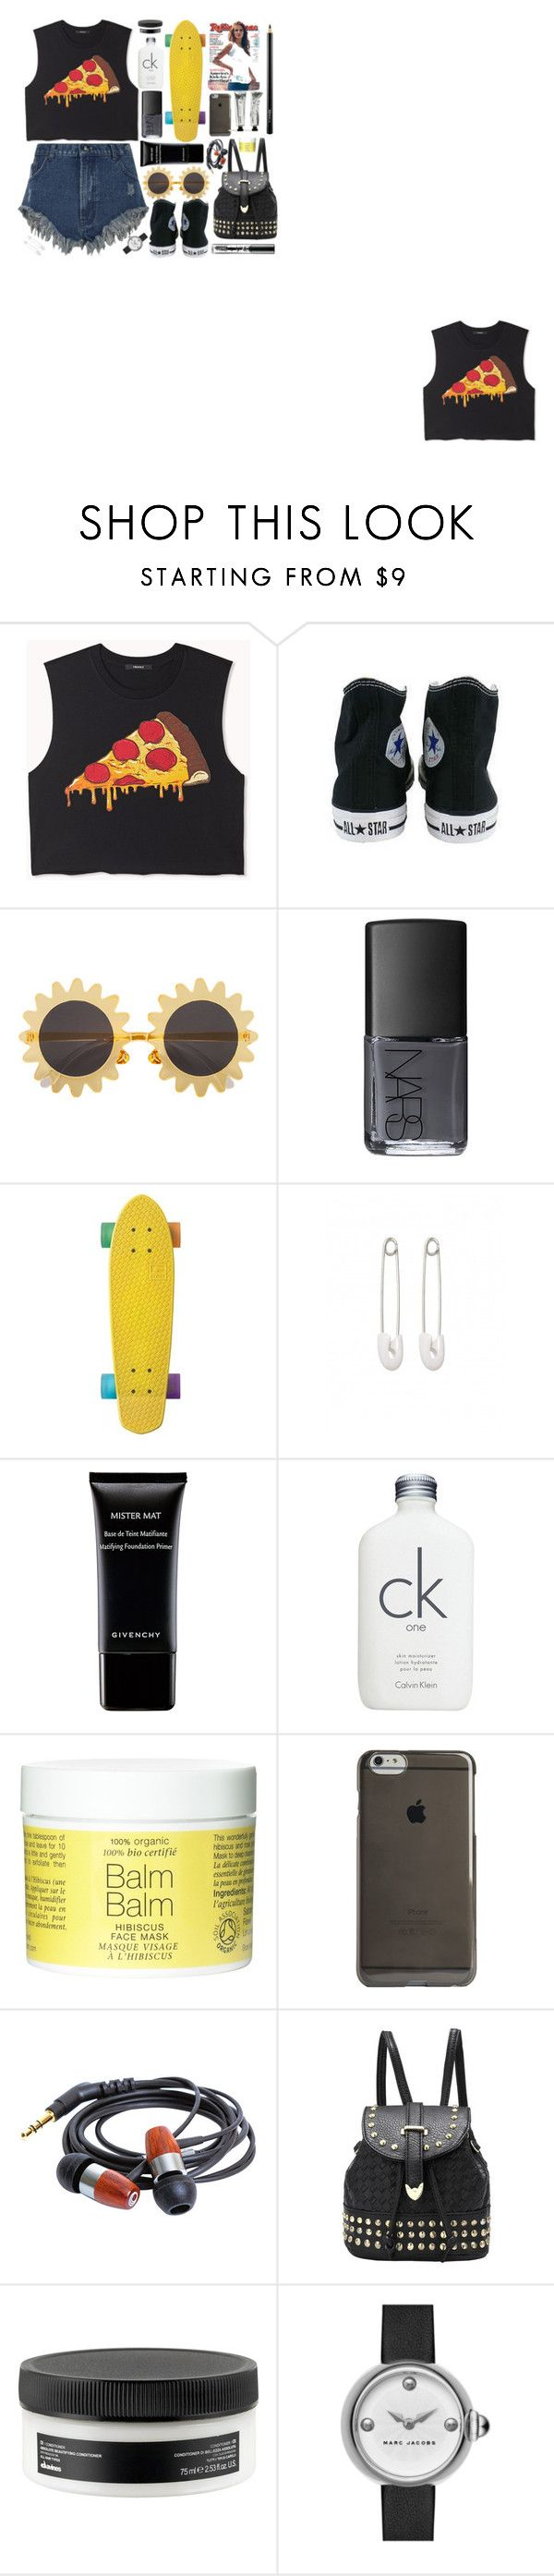 """Lunchtime"" by swanniboo on Polyvore featuring Forever 21, Converse, H&M, NARS Cosmetics, Kristin Cavallari, Givenchy, Calvin Klein, Agent 18, Davines and Marc by Marc Jacobs"